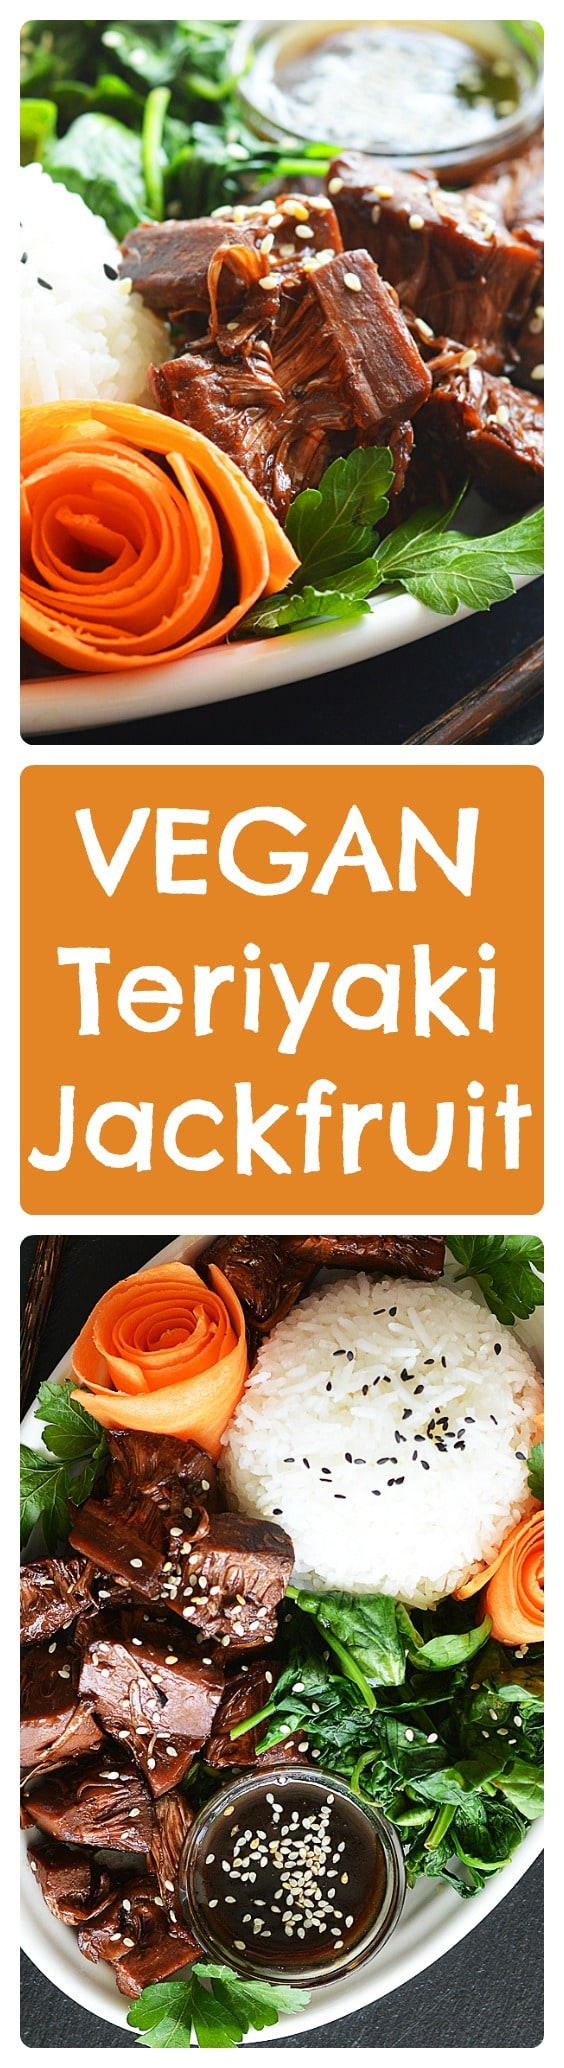 Vegan Teriyaki Jackfruit Bowl